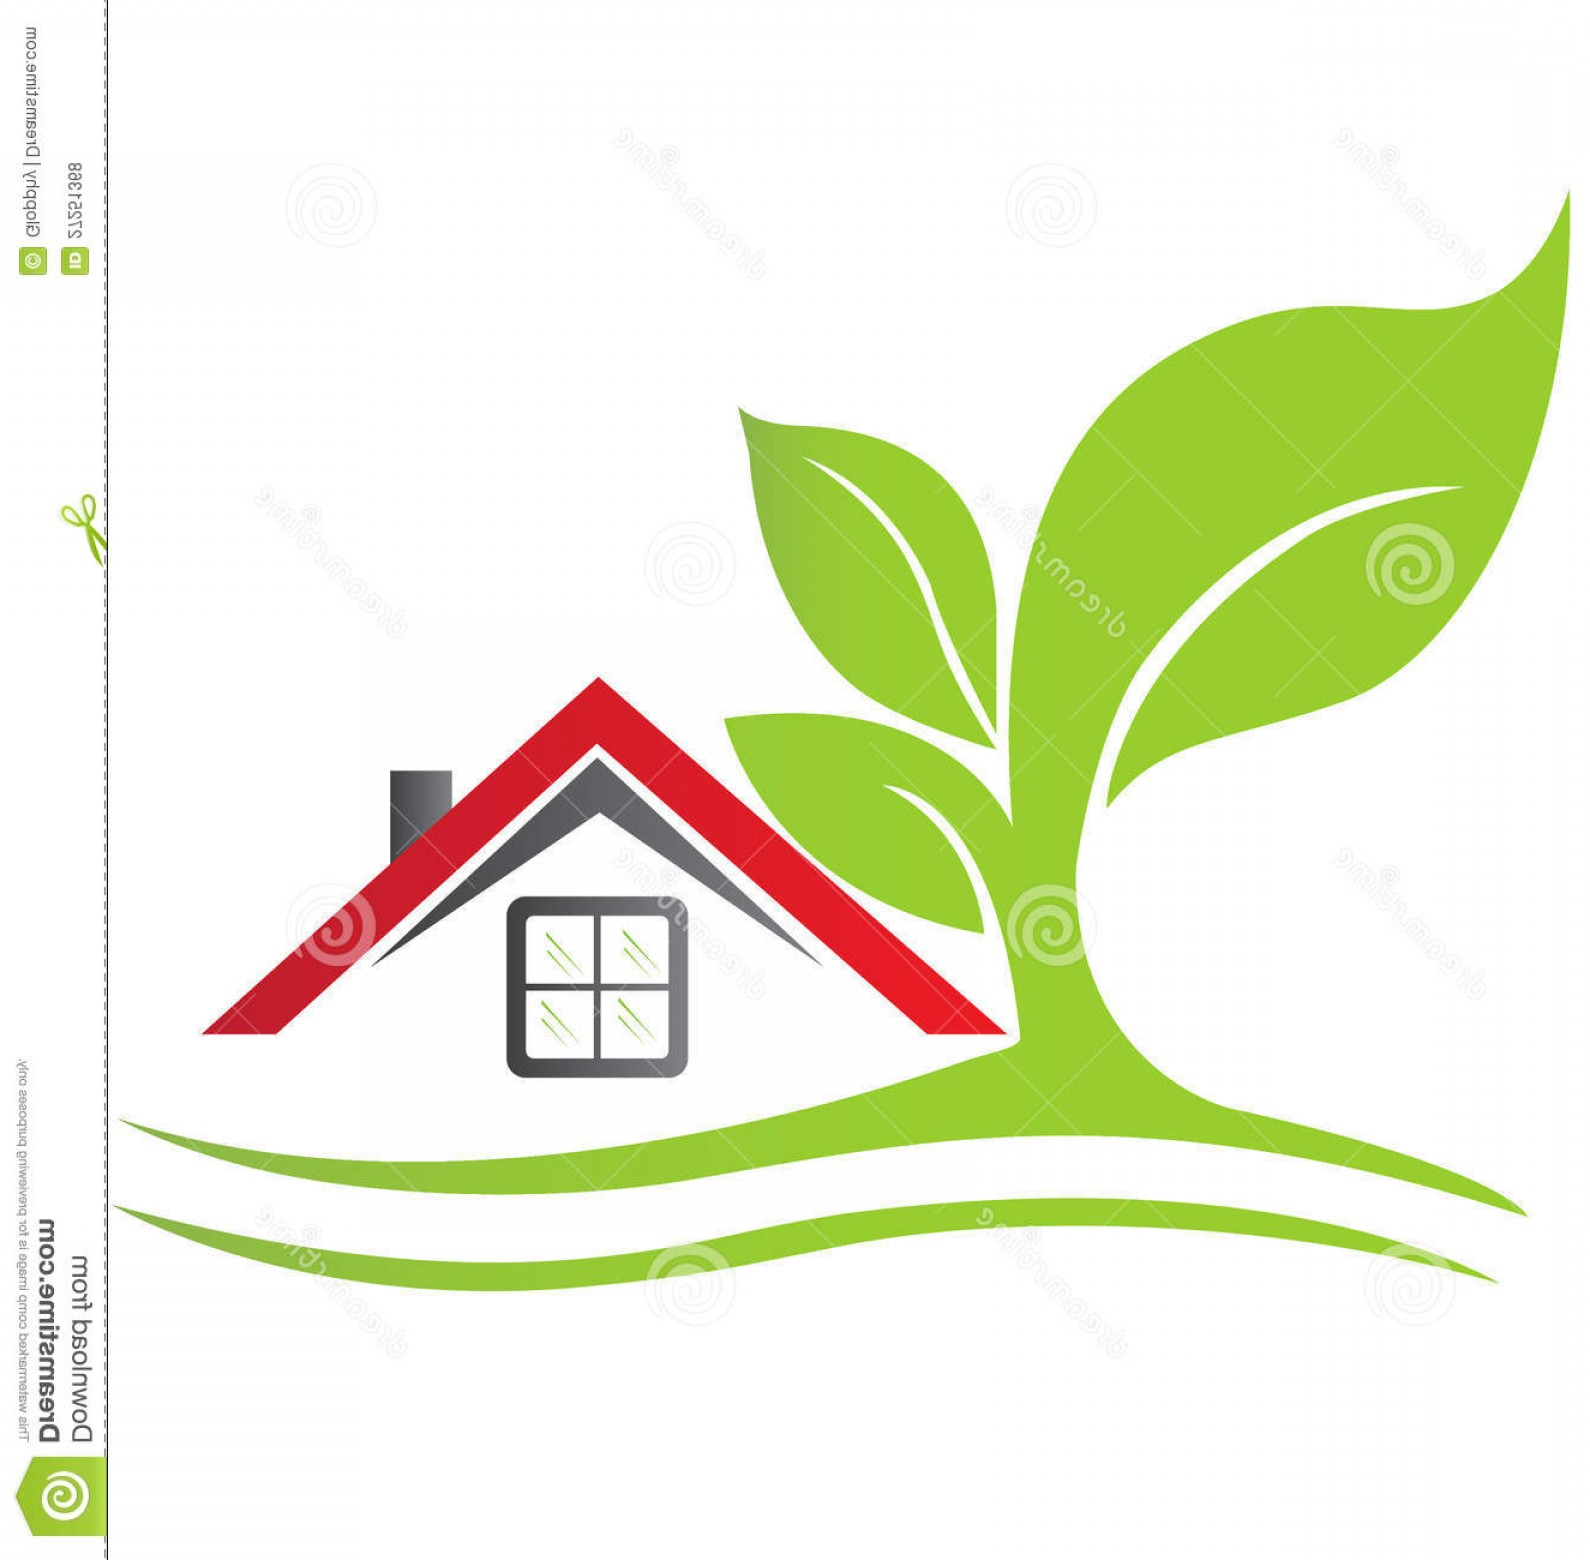 Home Logo Vector: Royalty Free Stock Photos Real Estate House Image